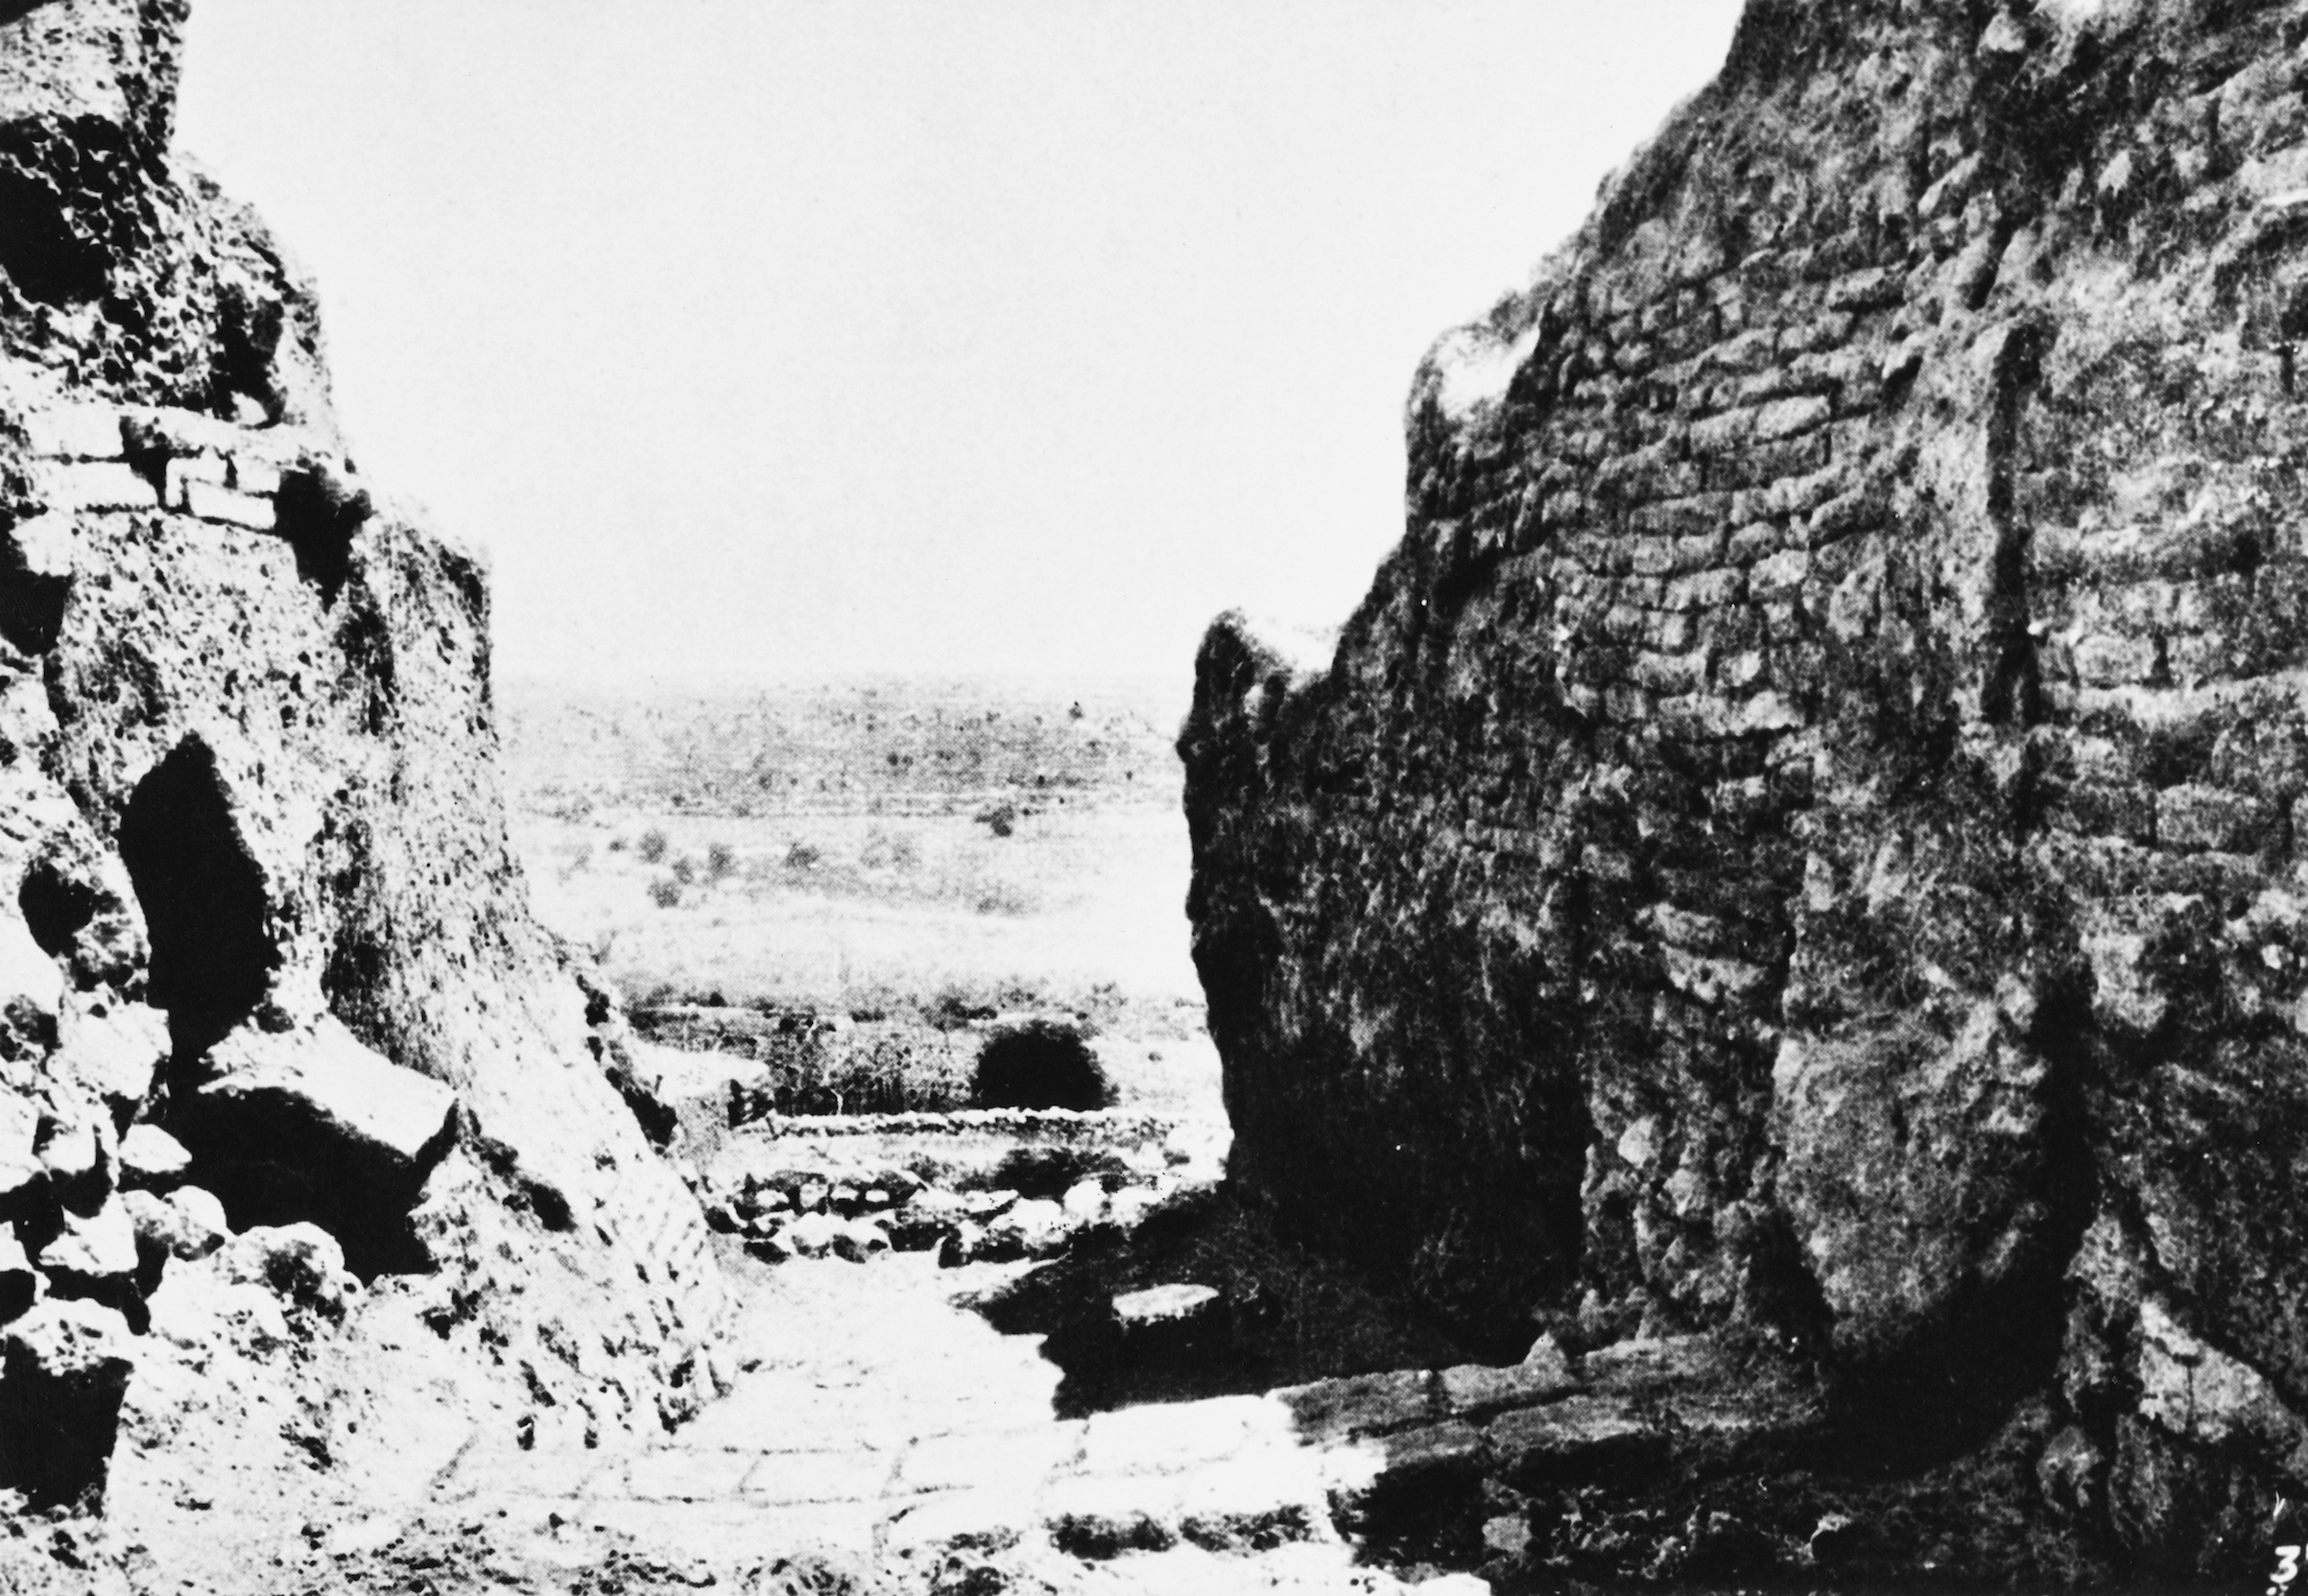 Walls in the ancient city of Jericho, during the 1907 - 1909 excavations of Tell es-Sultan and Tulul Abu el-'Alayiq by German archeologists Ernst Sellin and Carl Watzinger, circa 1909. Original publication: Illustrated London News, Feb. 6, 1909.